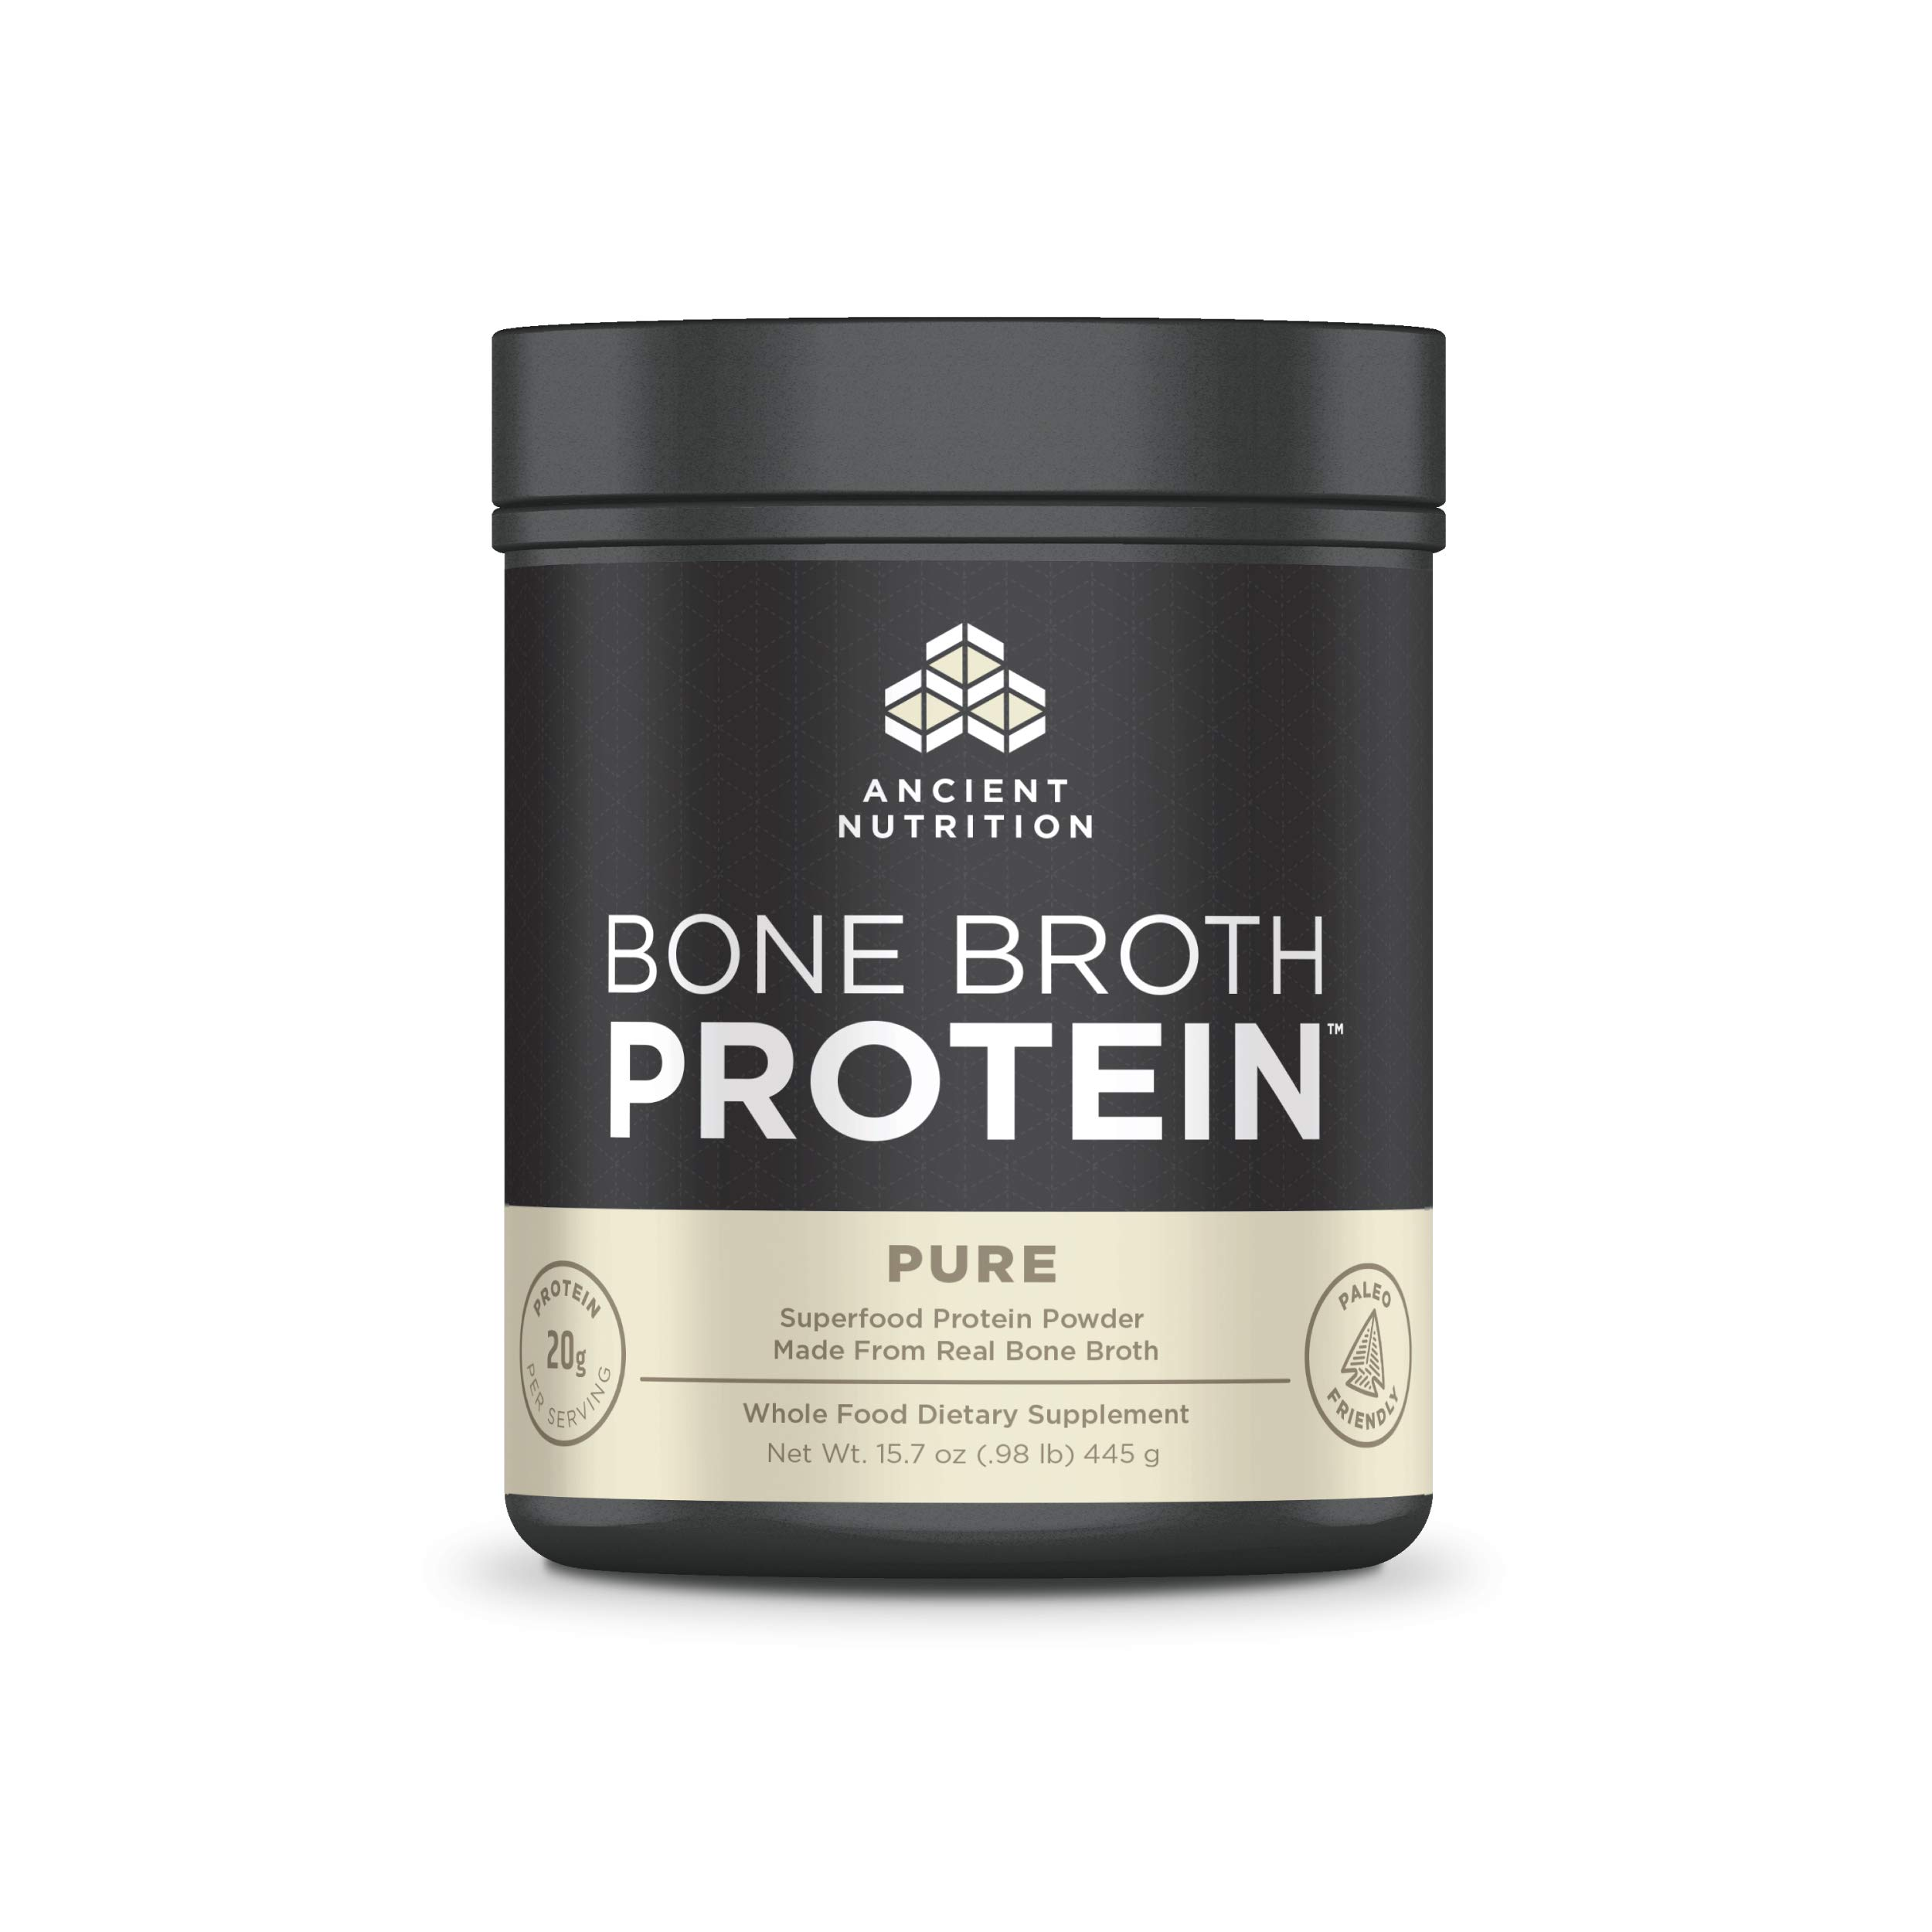 Ancient Nutrition Bone Broth Protein, Pure - Dairy Free, Gluten Free and Paleo Friendly, 20 Servings